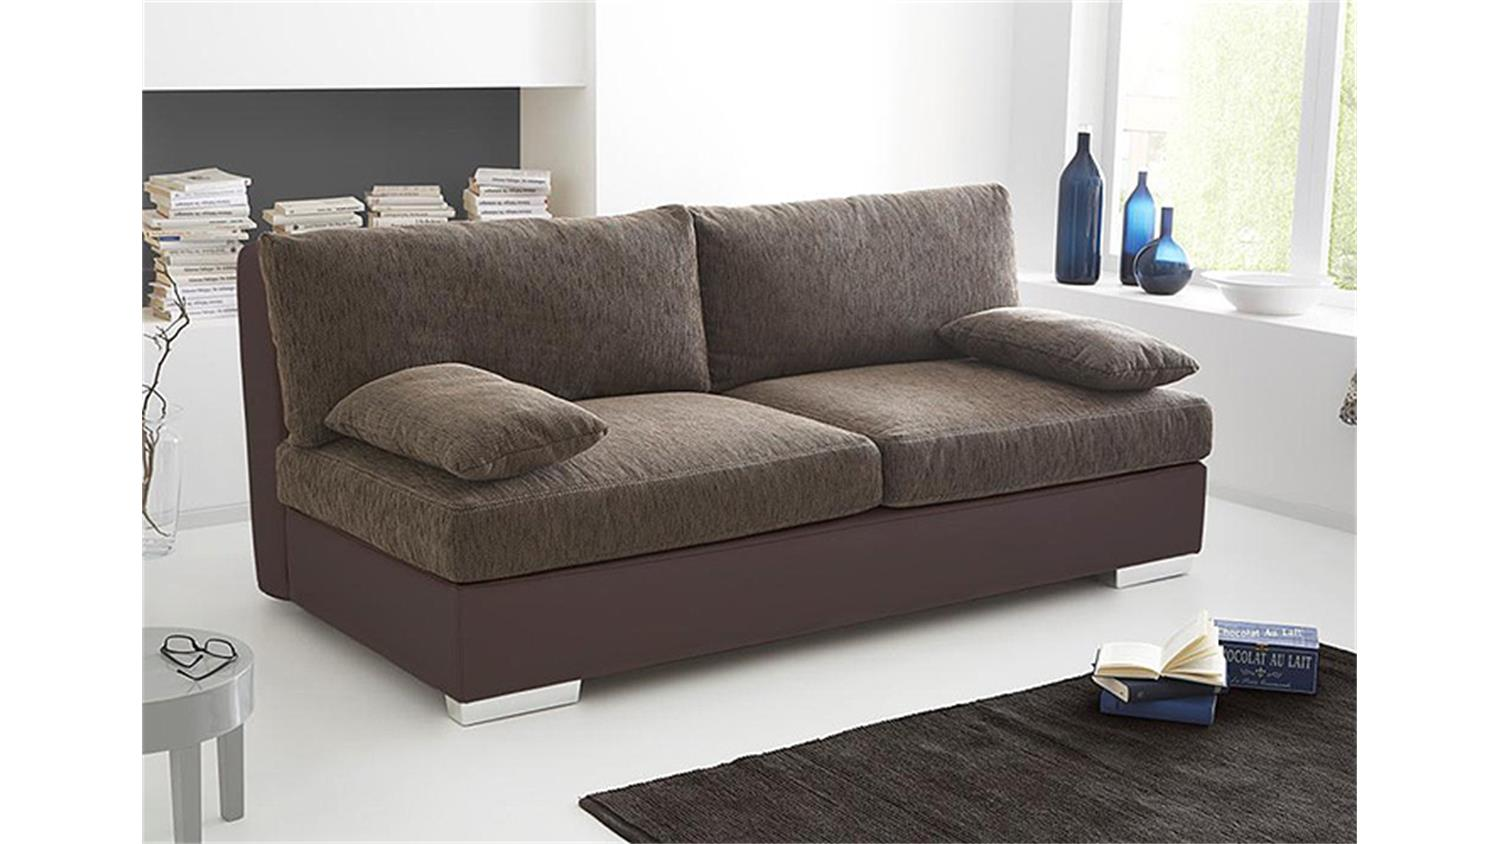 schlafsofa dorset sofa boxspring braun mit bettkasten. Black Bedroom Furniture Sets. Home Design Ideas